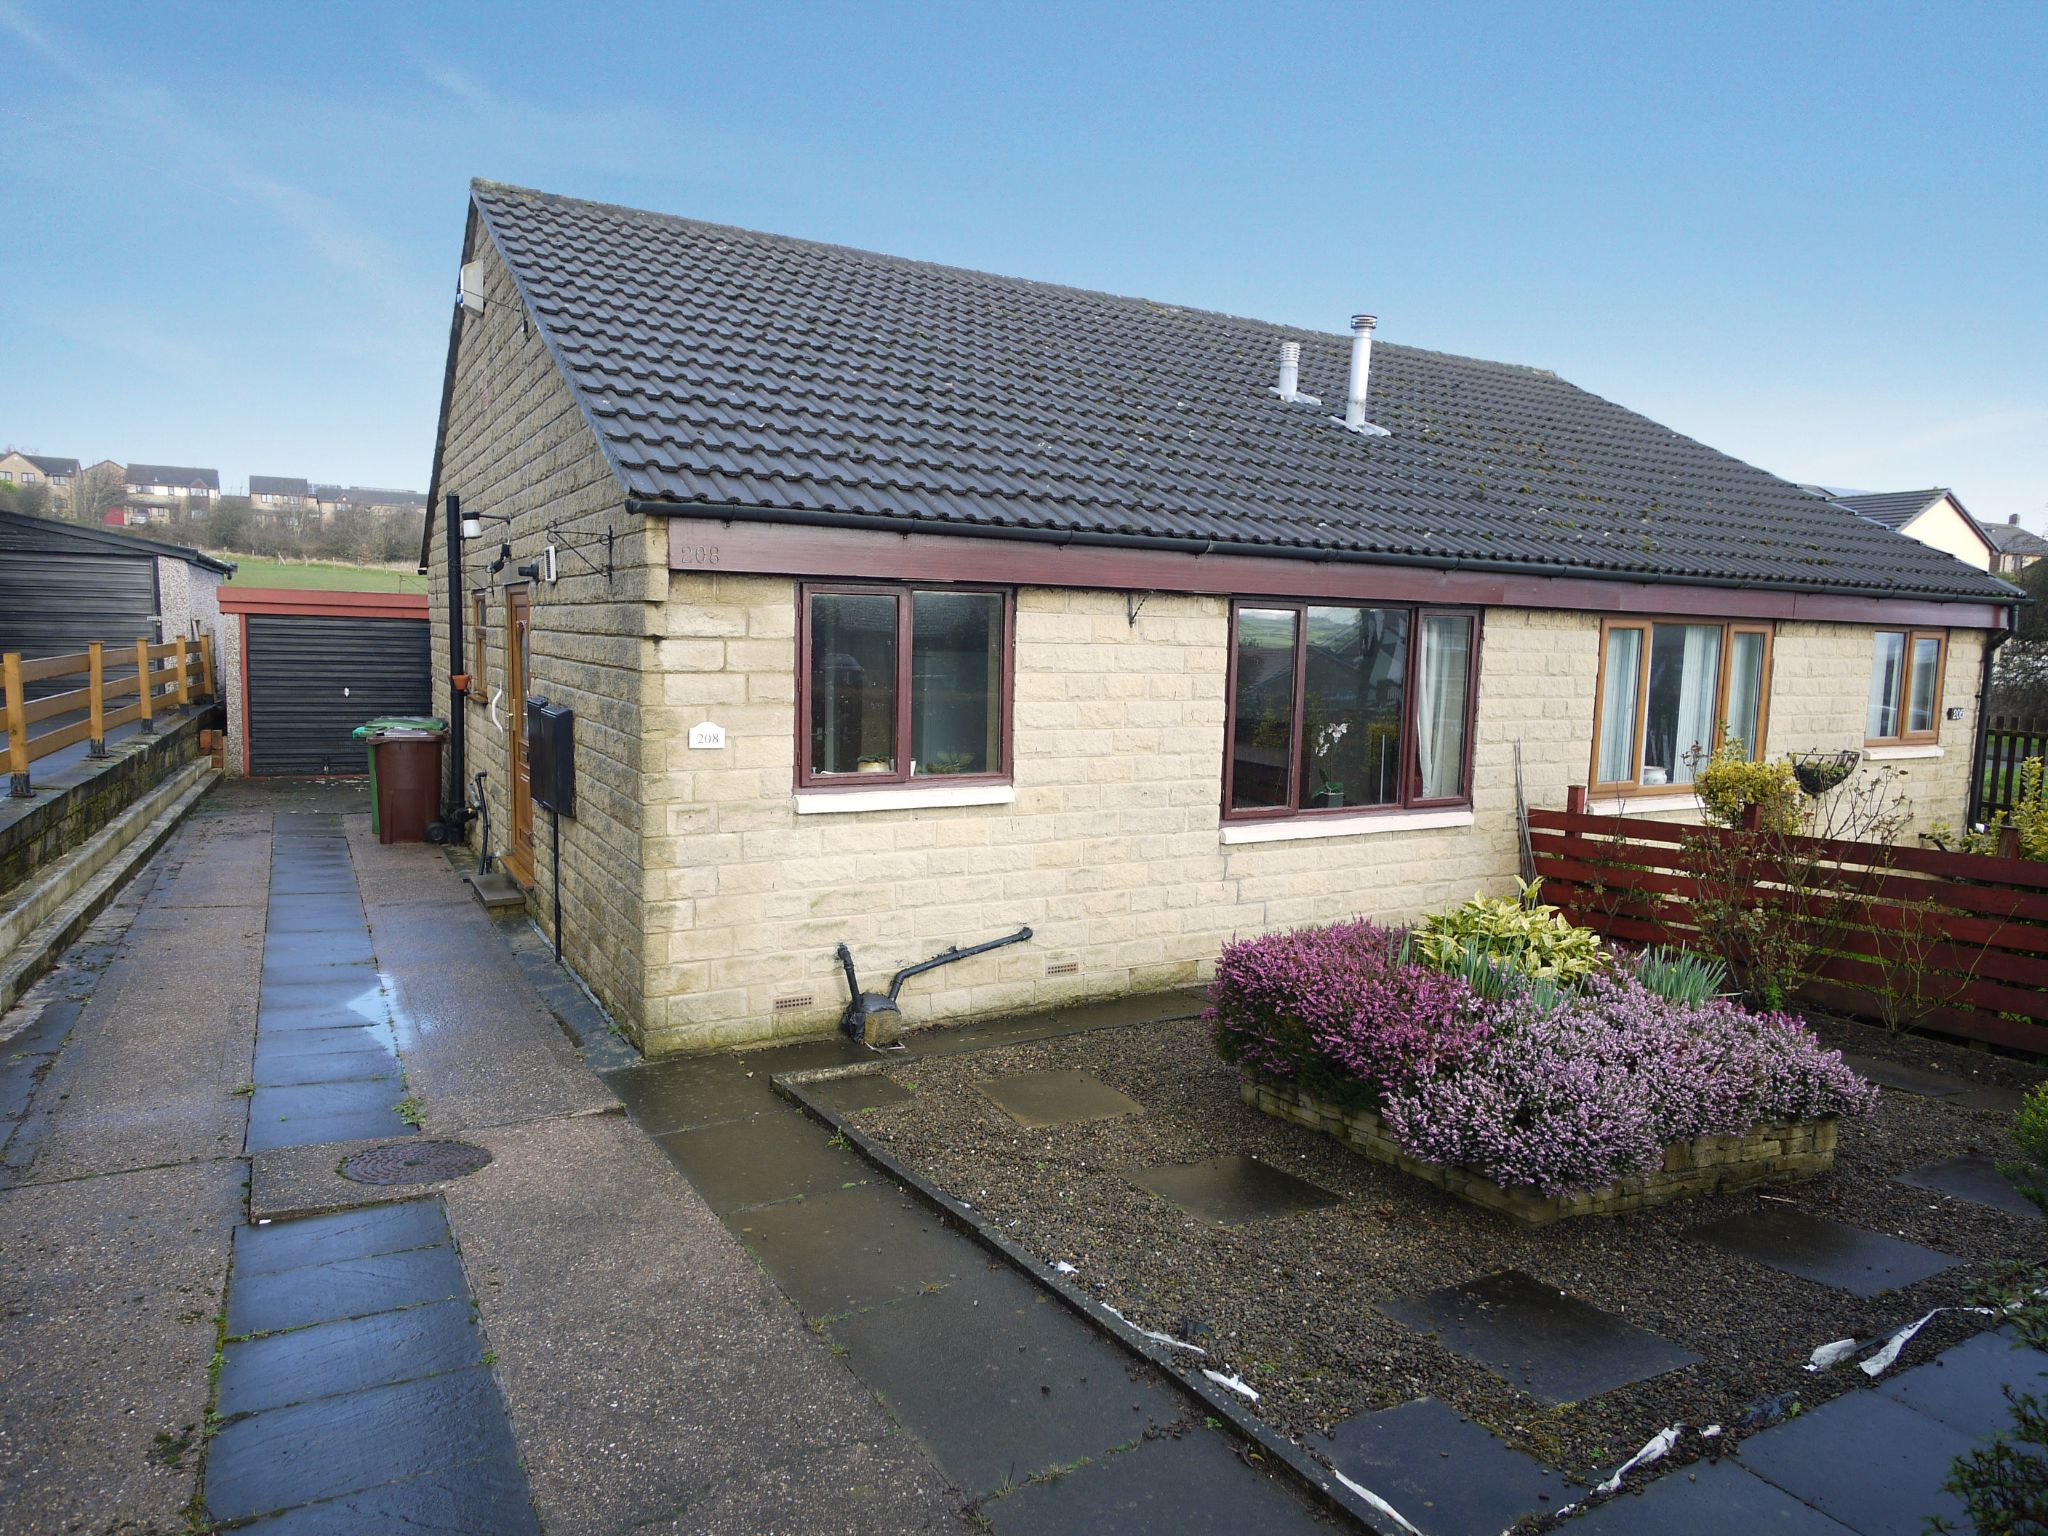 2 bedroom semi-detached bungalow SSTC in Huddersfield - Main.